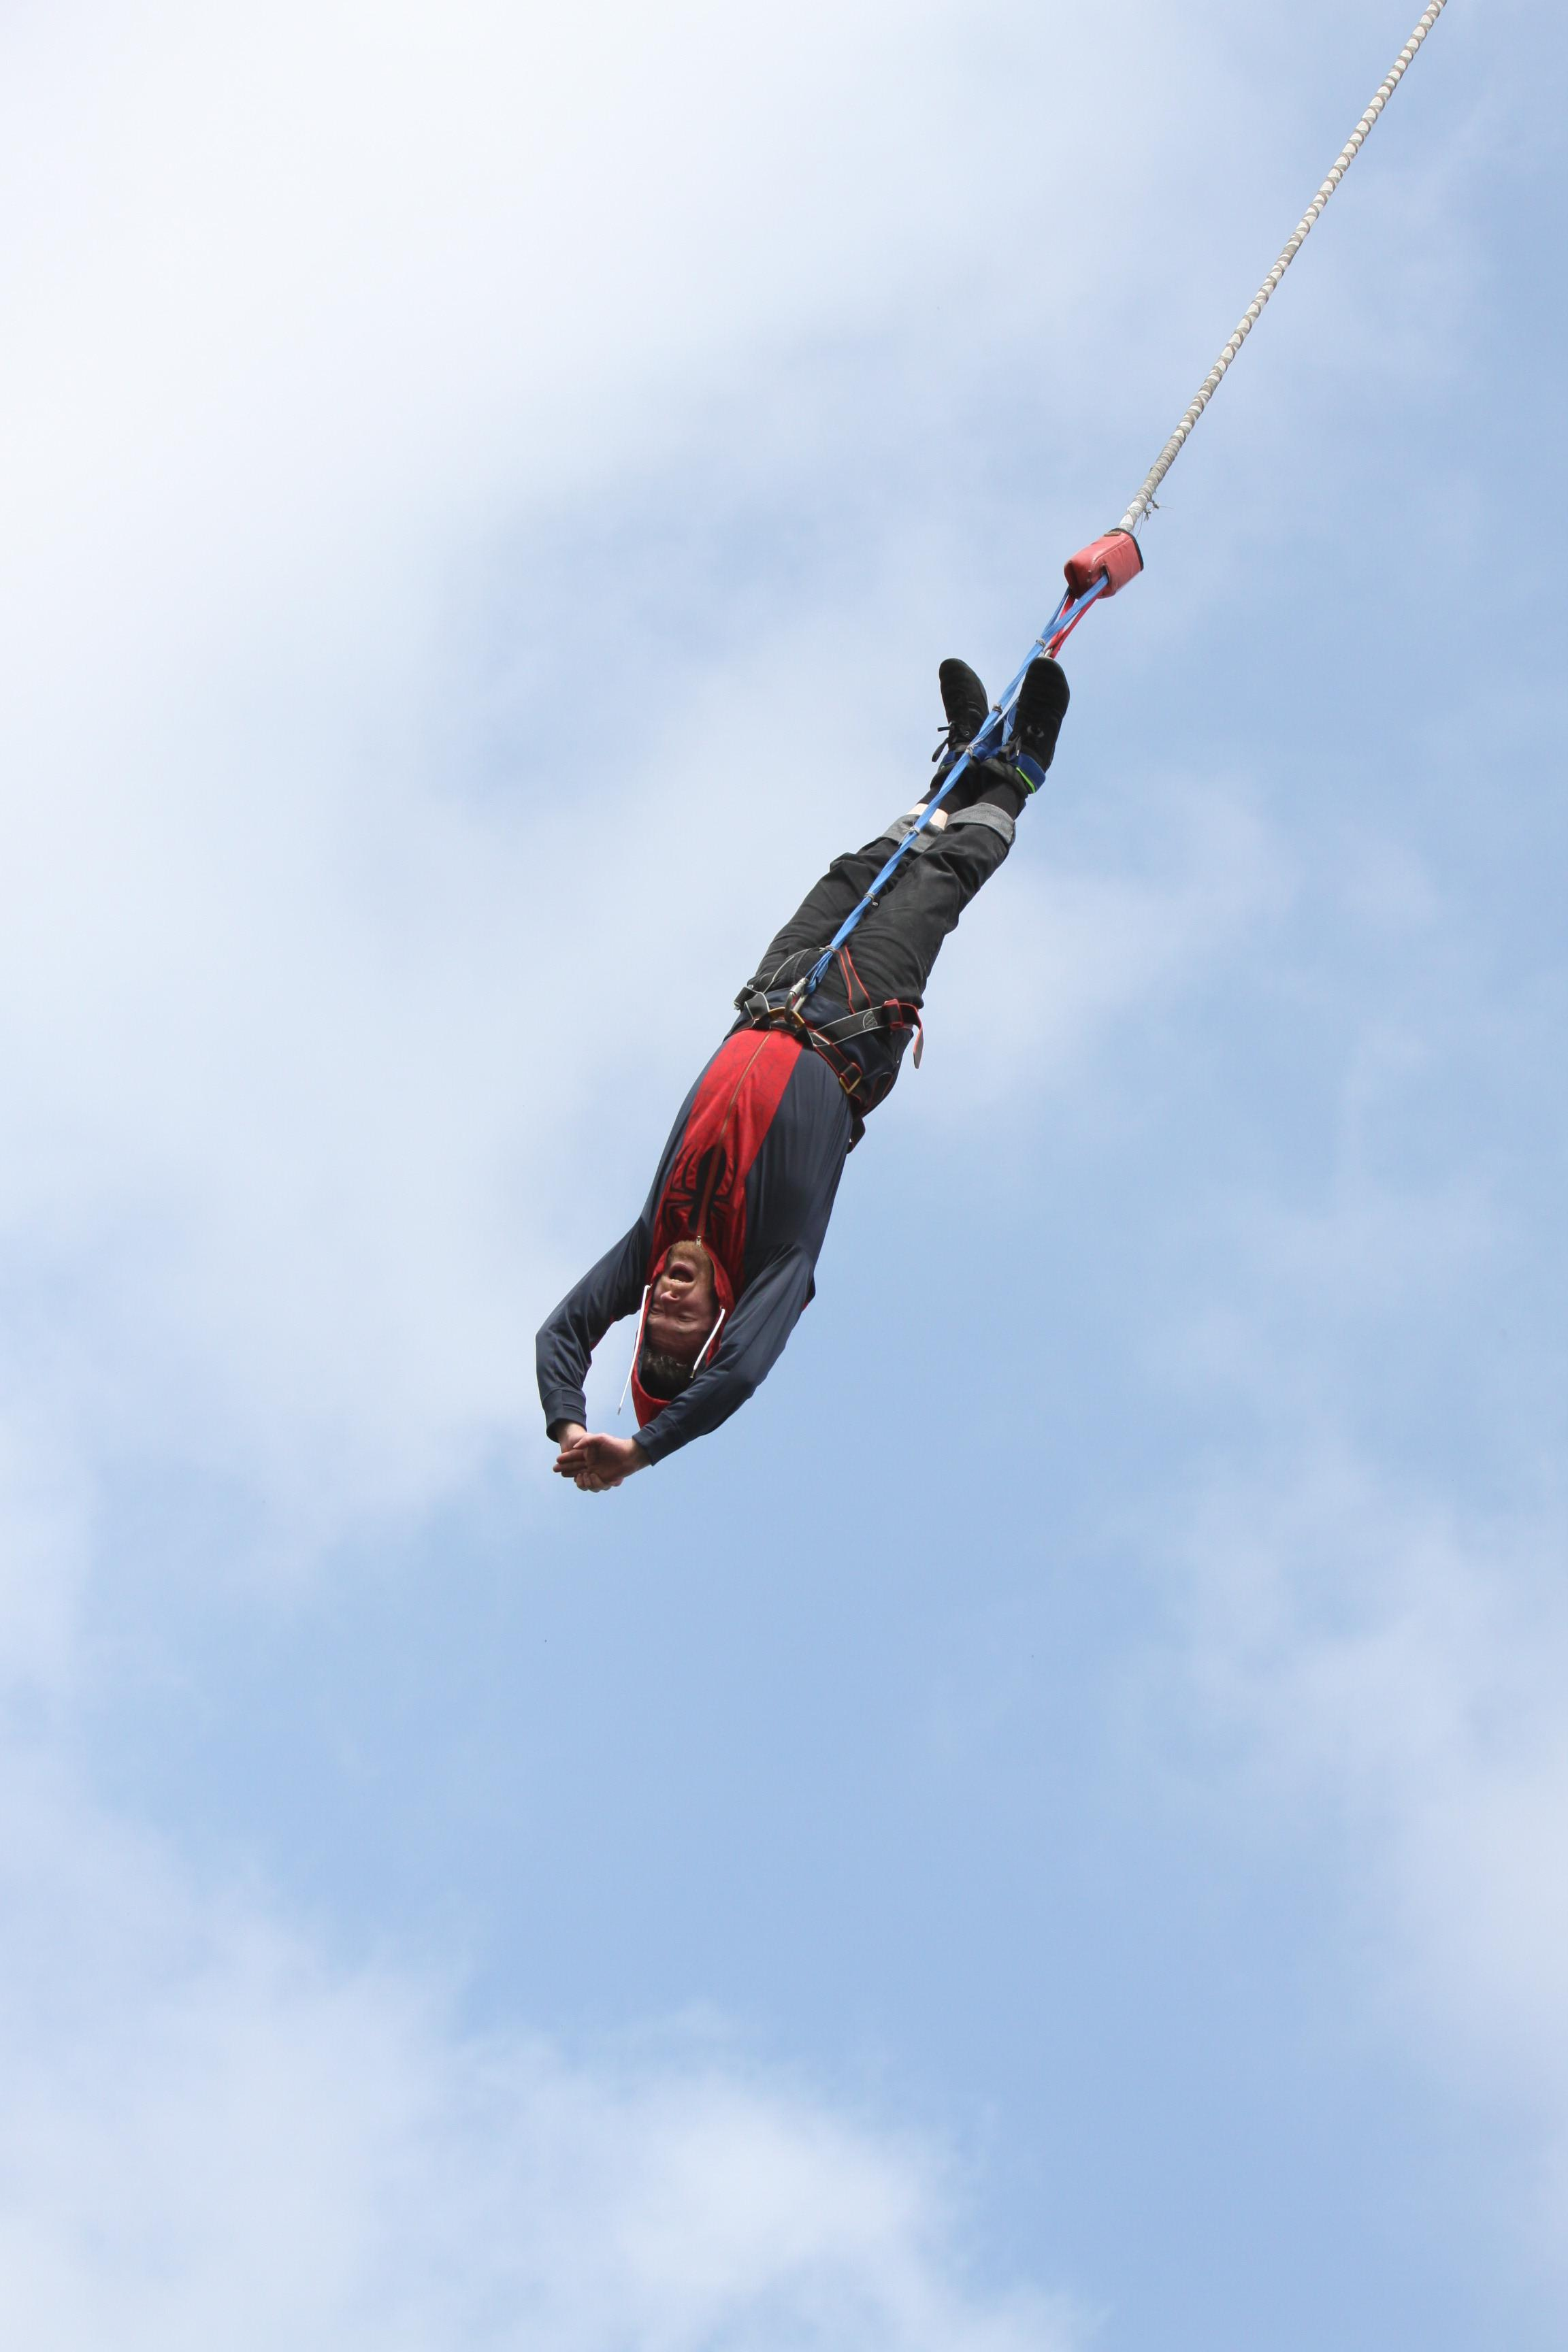 E.ON Kingswinford's Leo Chell has completed a charity bungee jump to raise money for Alzheimer's Society.